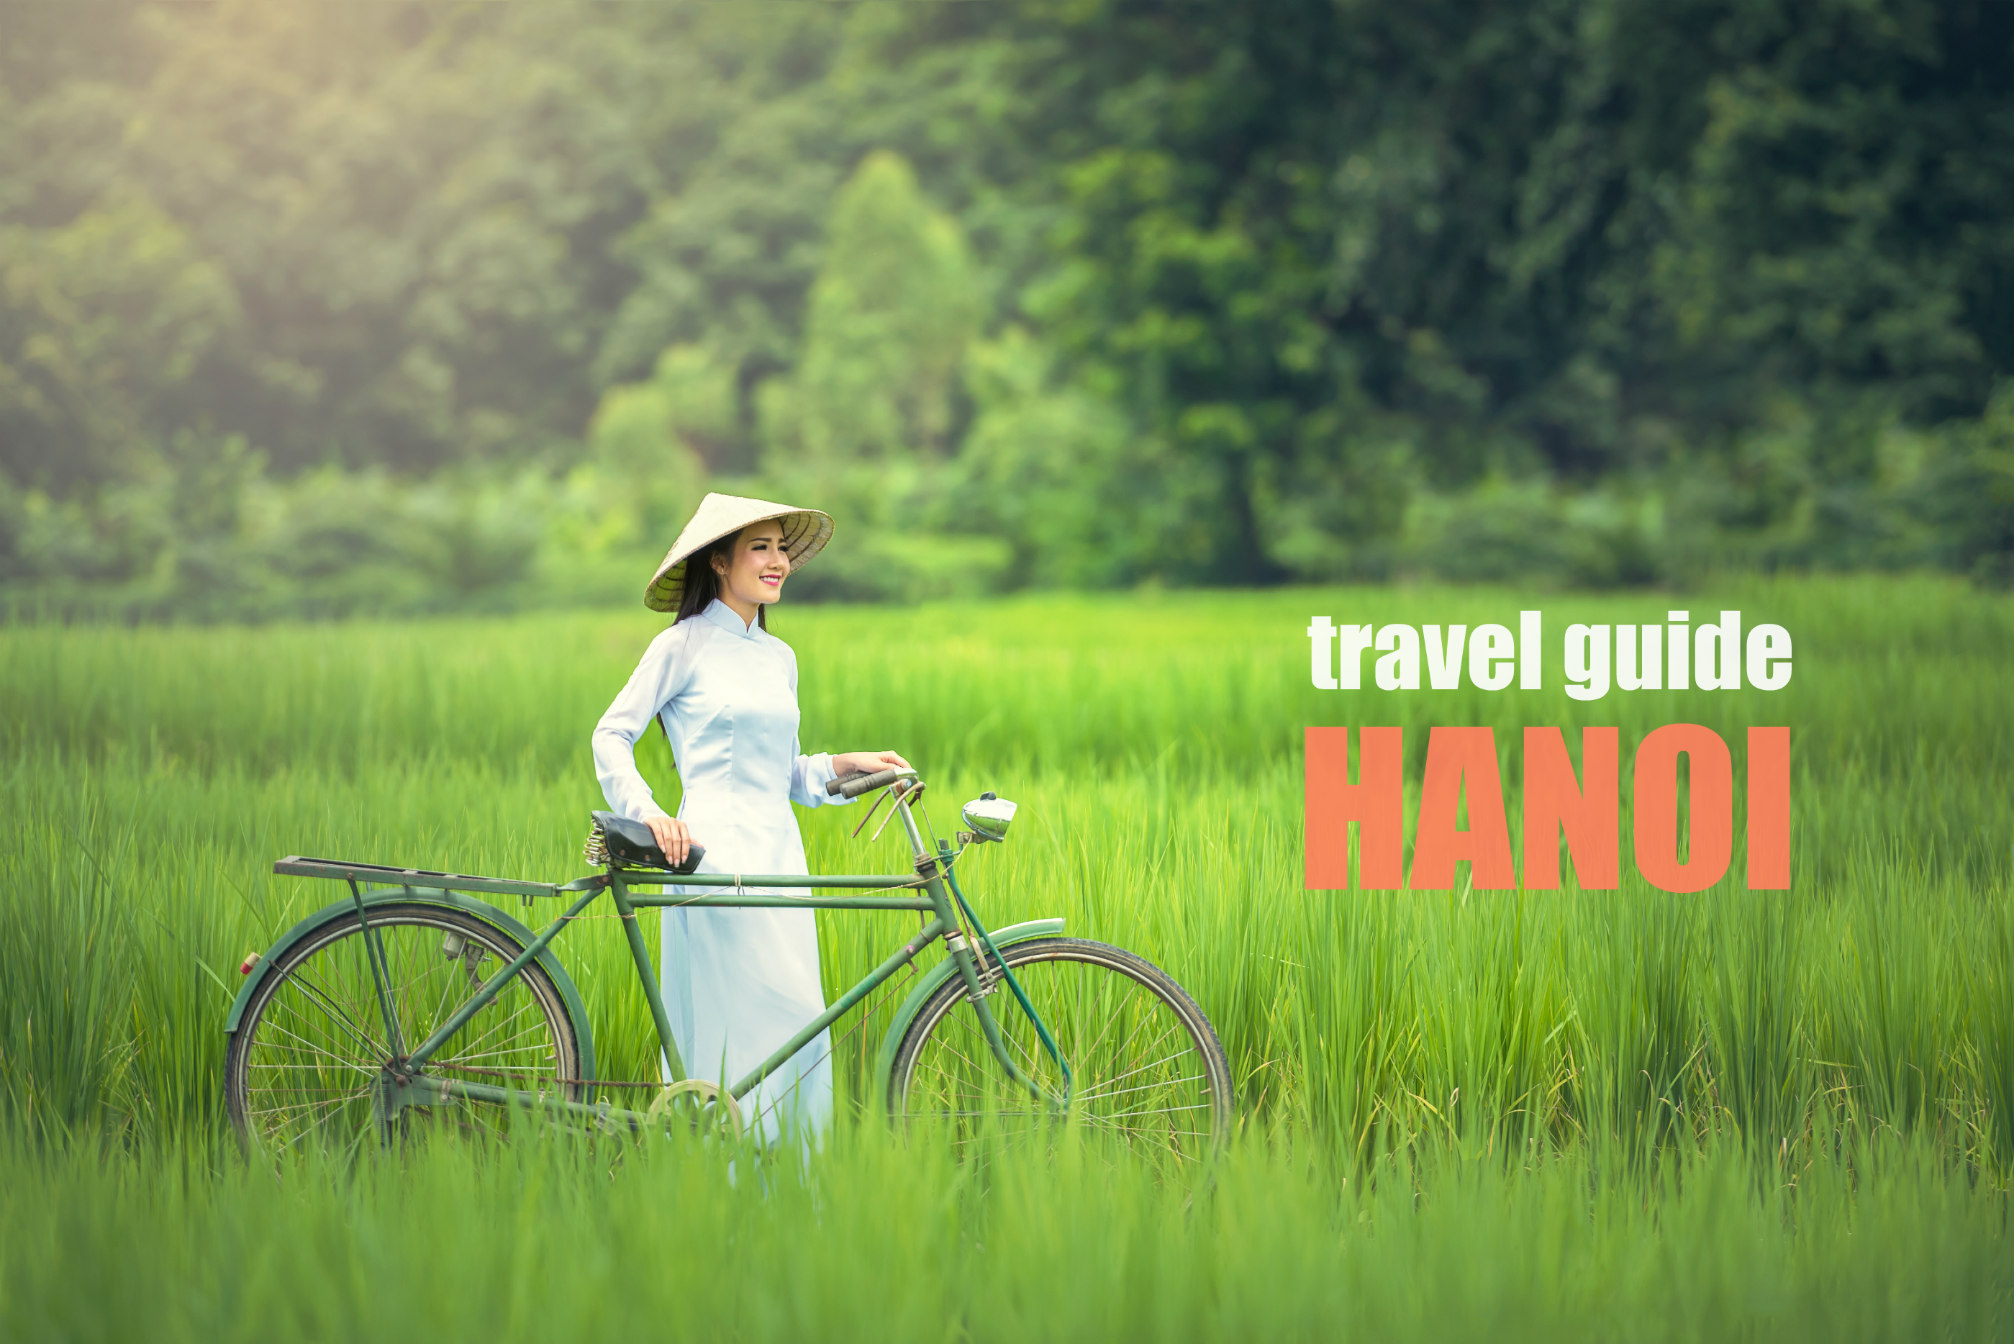 HANOI TRAVEL GUIDE BLOG (BUDGET + ITINERARY) 2019